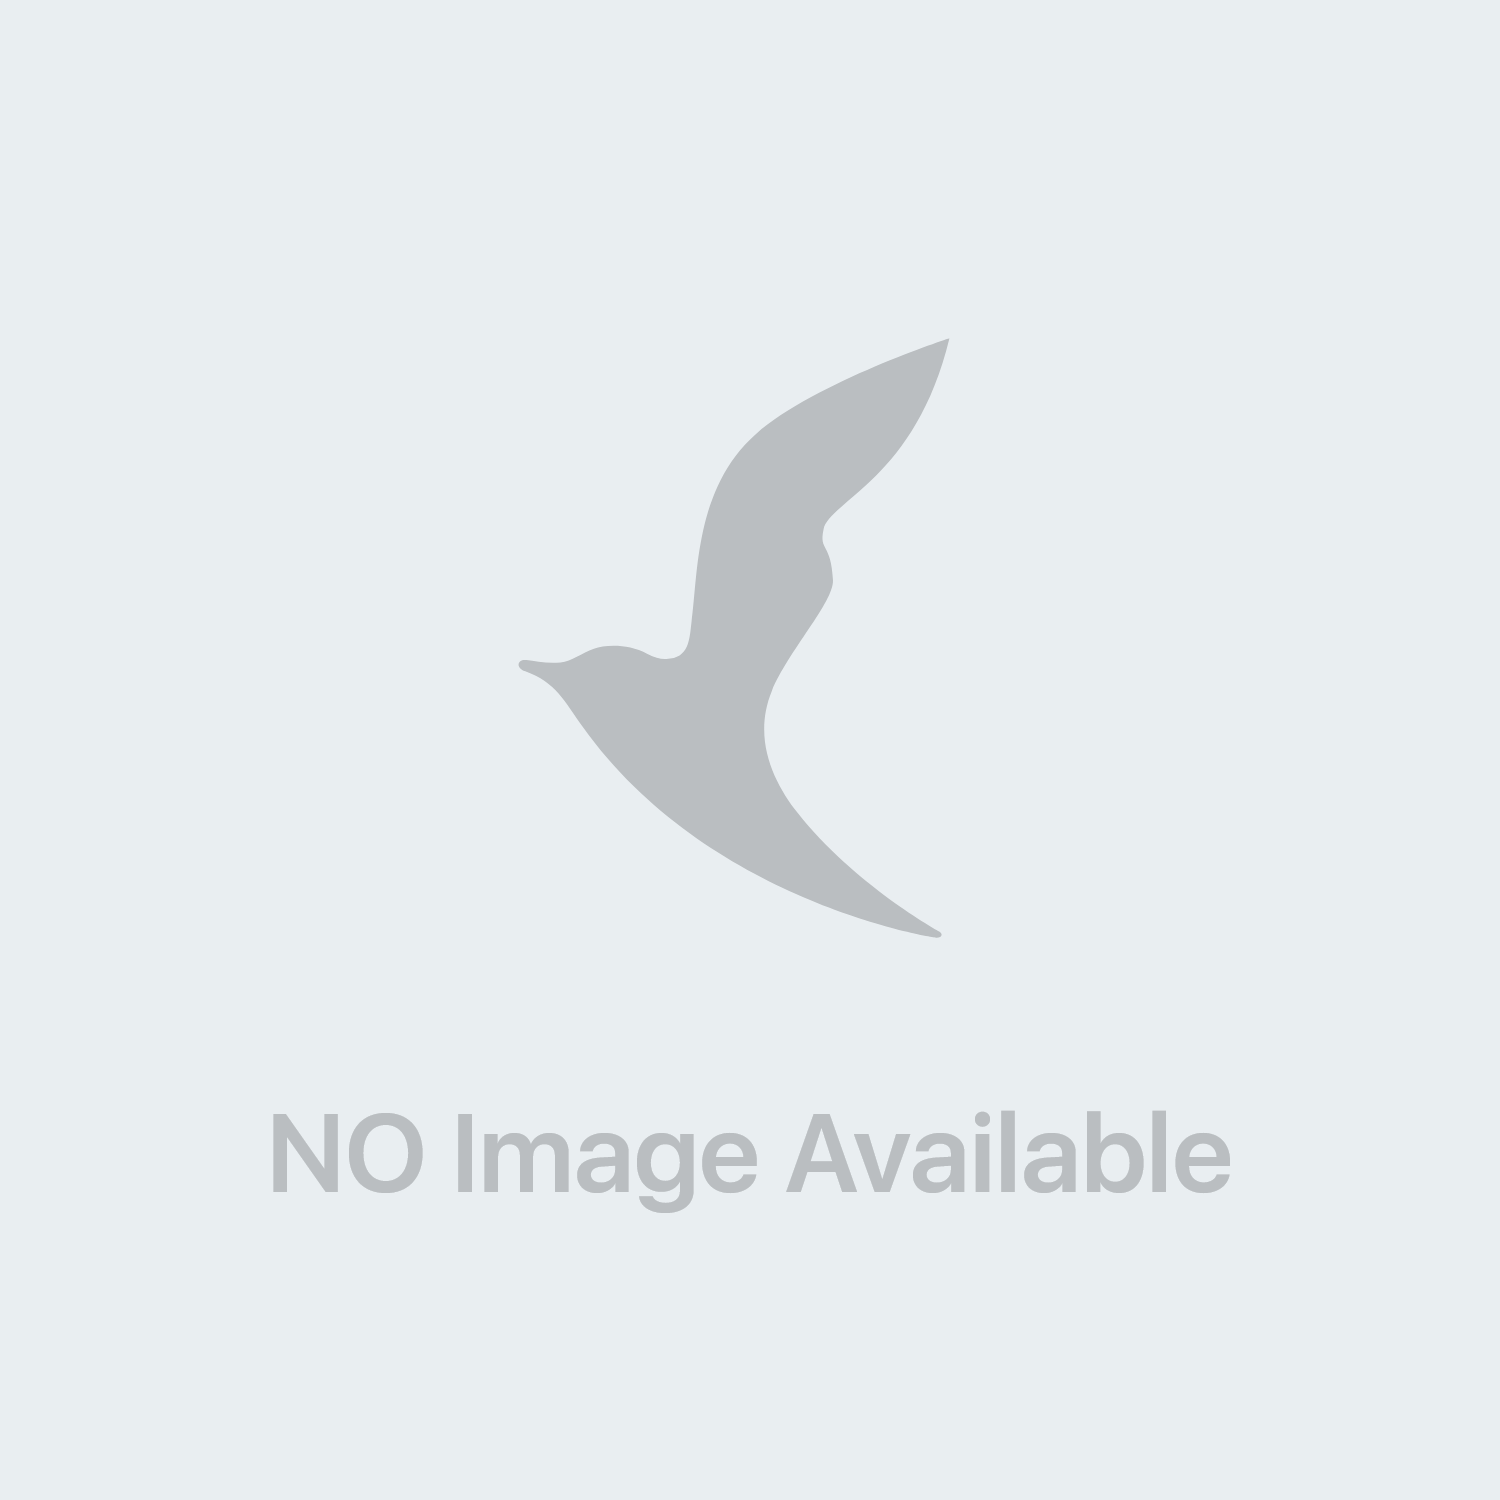 Biomineral One Lactocapil Plus Integratore Anticaduta Capelli 30 Compresse